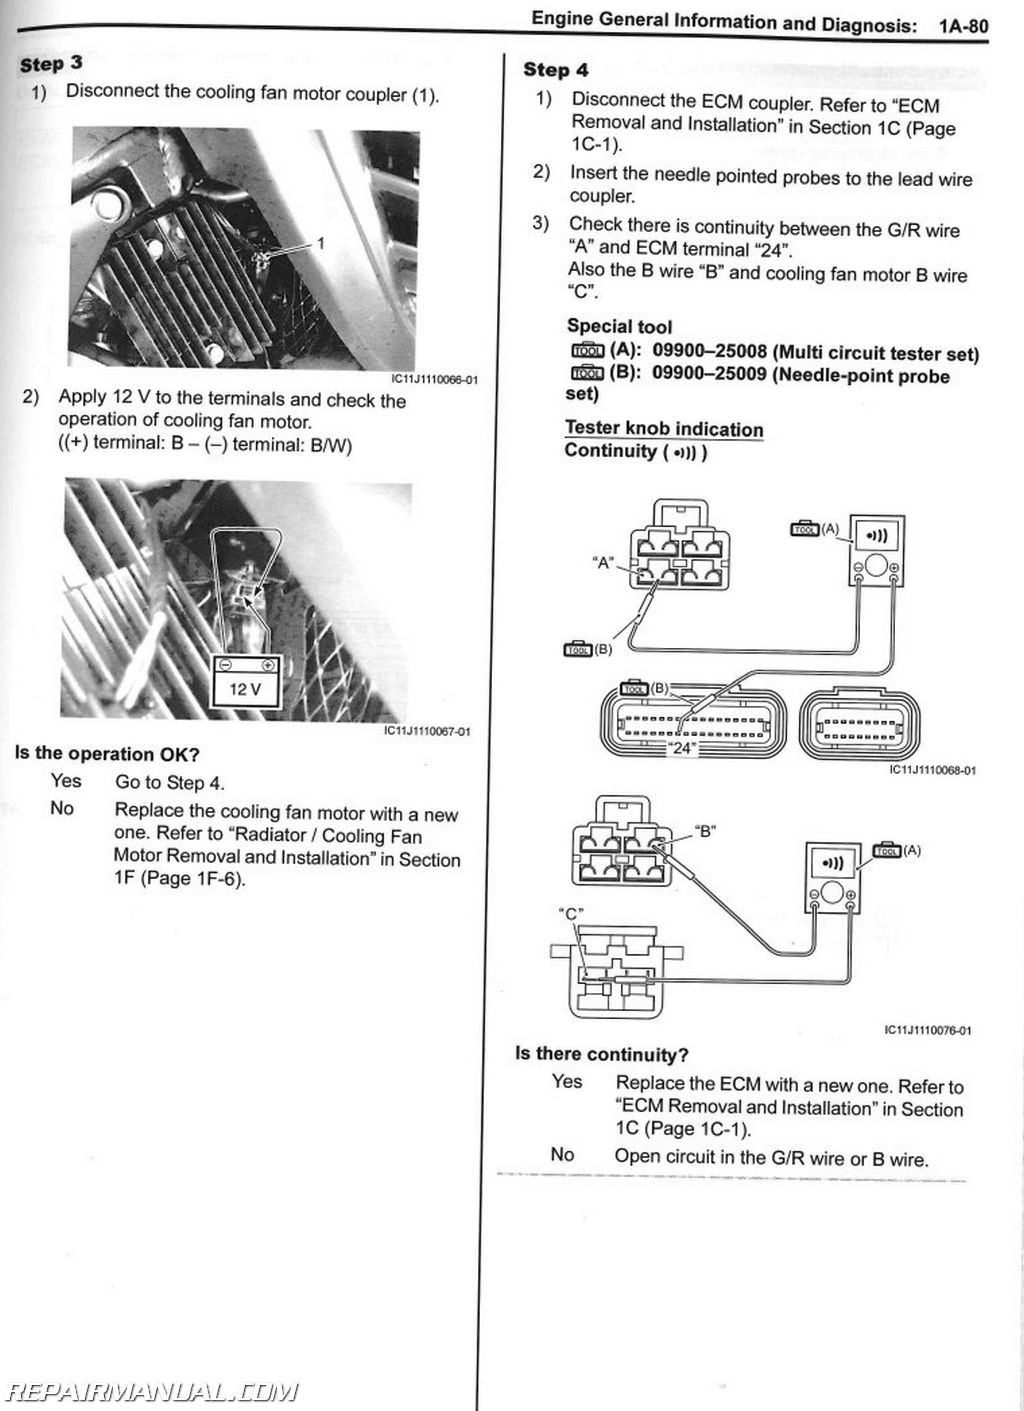 Suzuki Dl650a Wiring Diagram And Schematics Yamaha 135lc 2012 2016 Motorcycle Service Manual